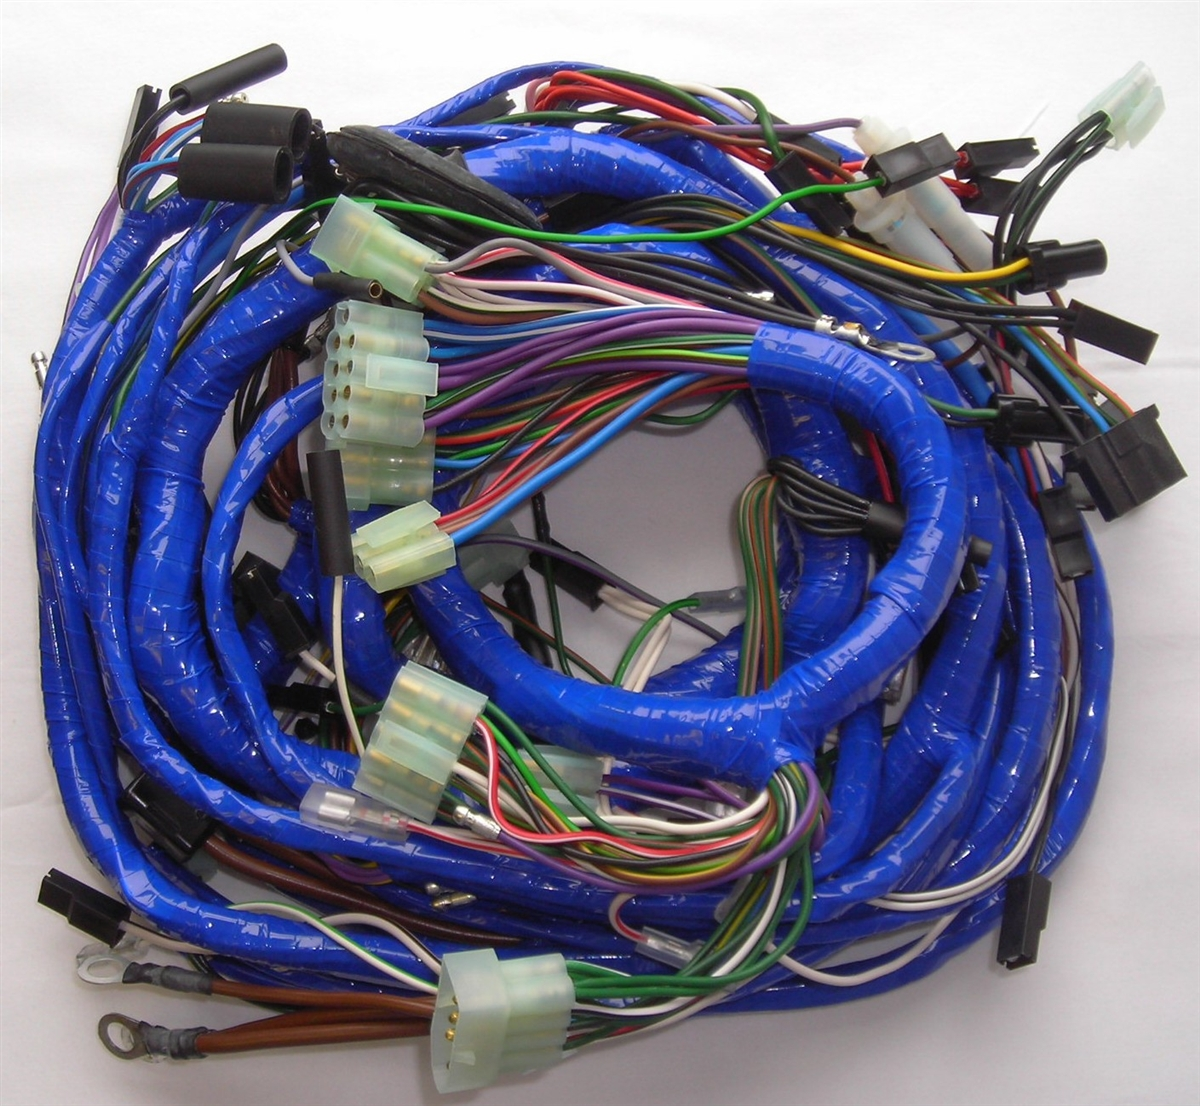 1978 Mgb Wiring Harness Diagram Light 79 Main 520 Rh Britishwiring Com 1973 Replacement